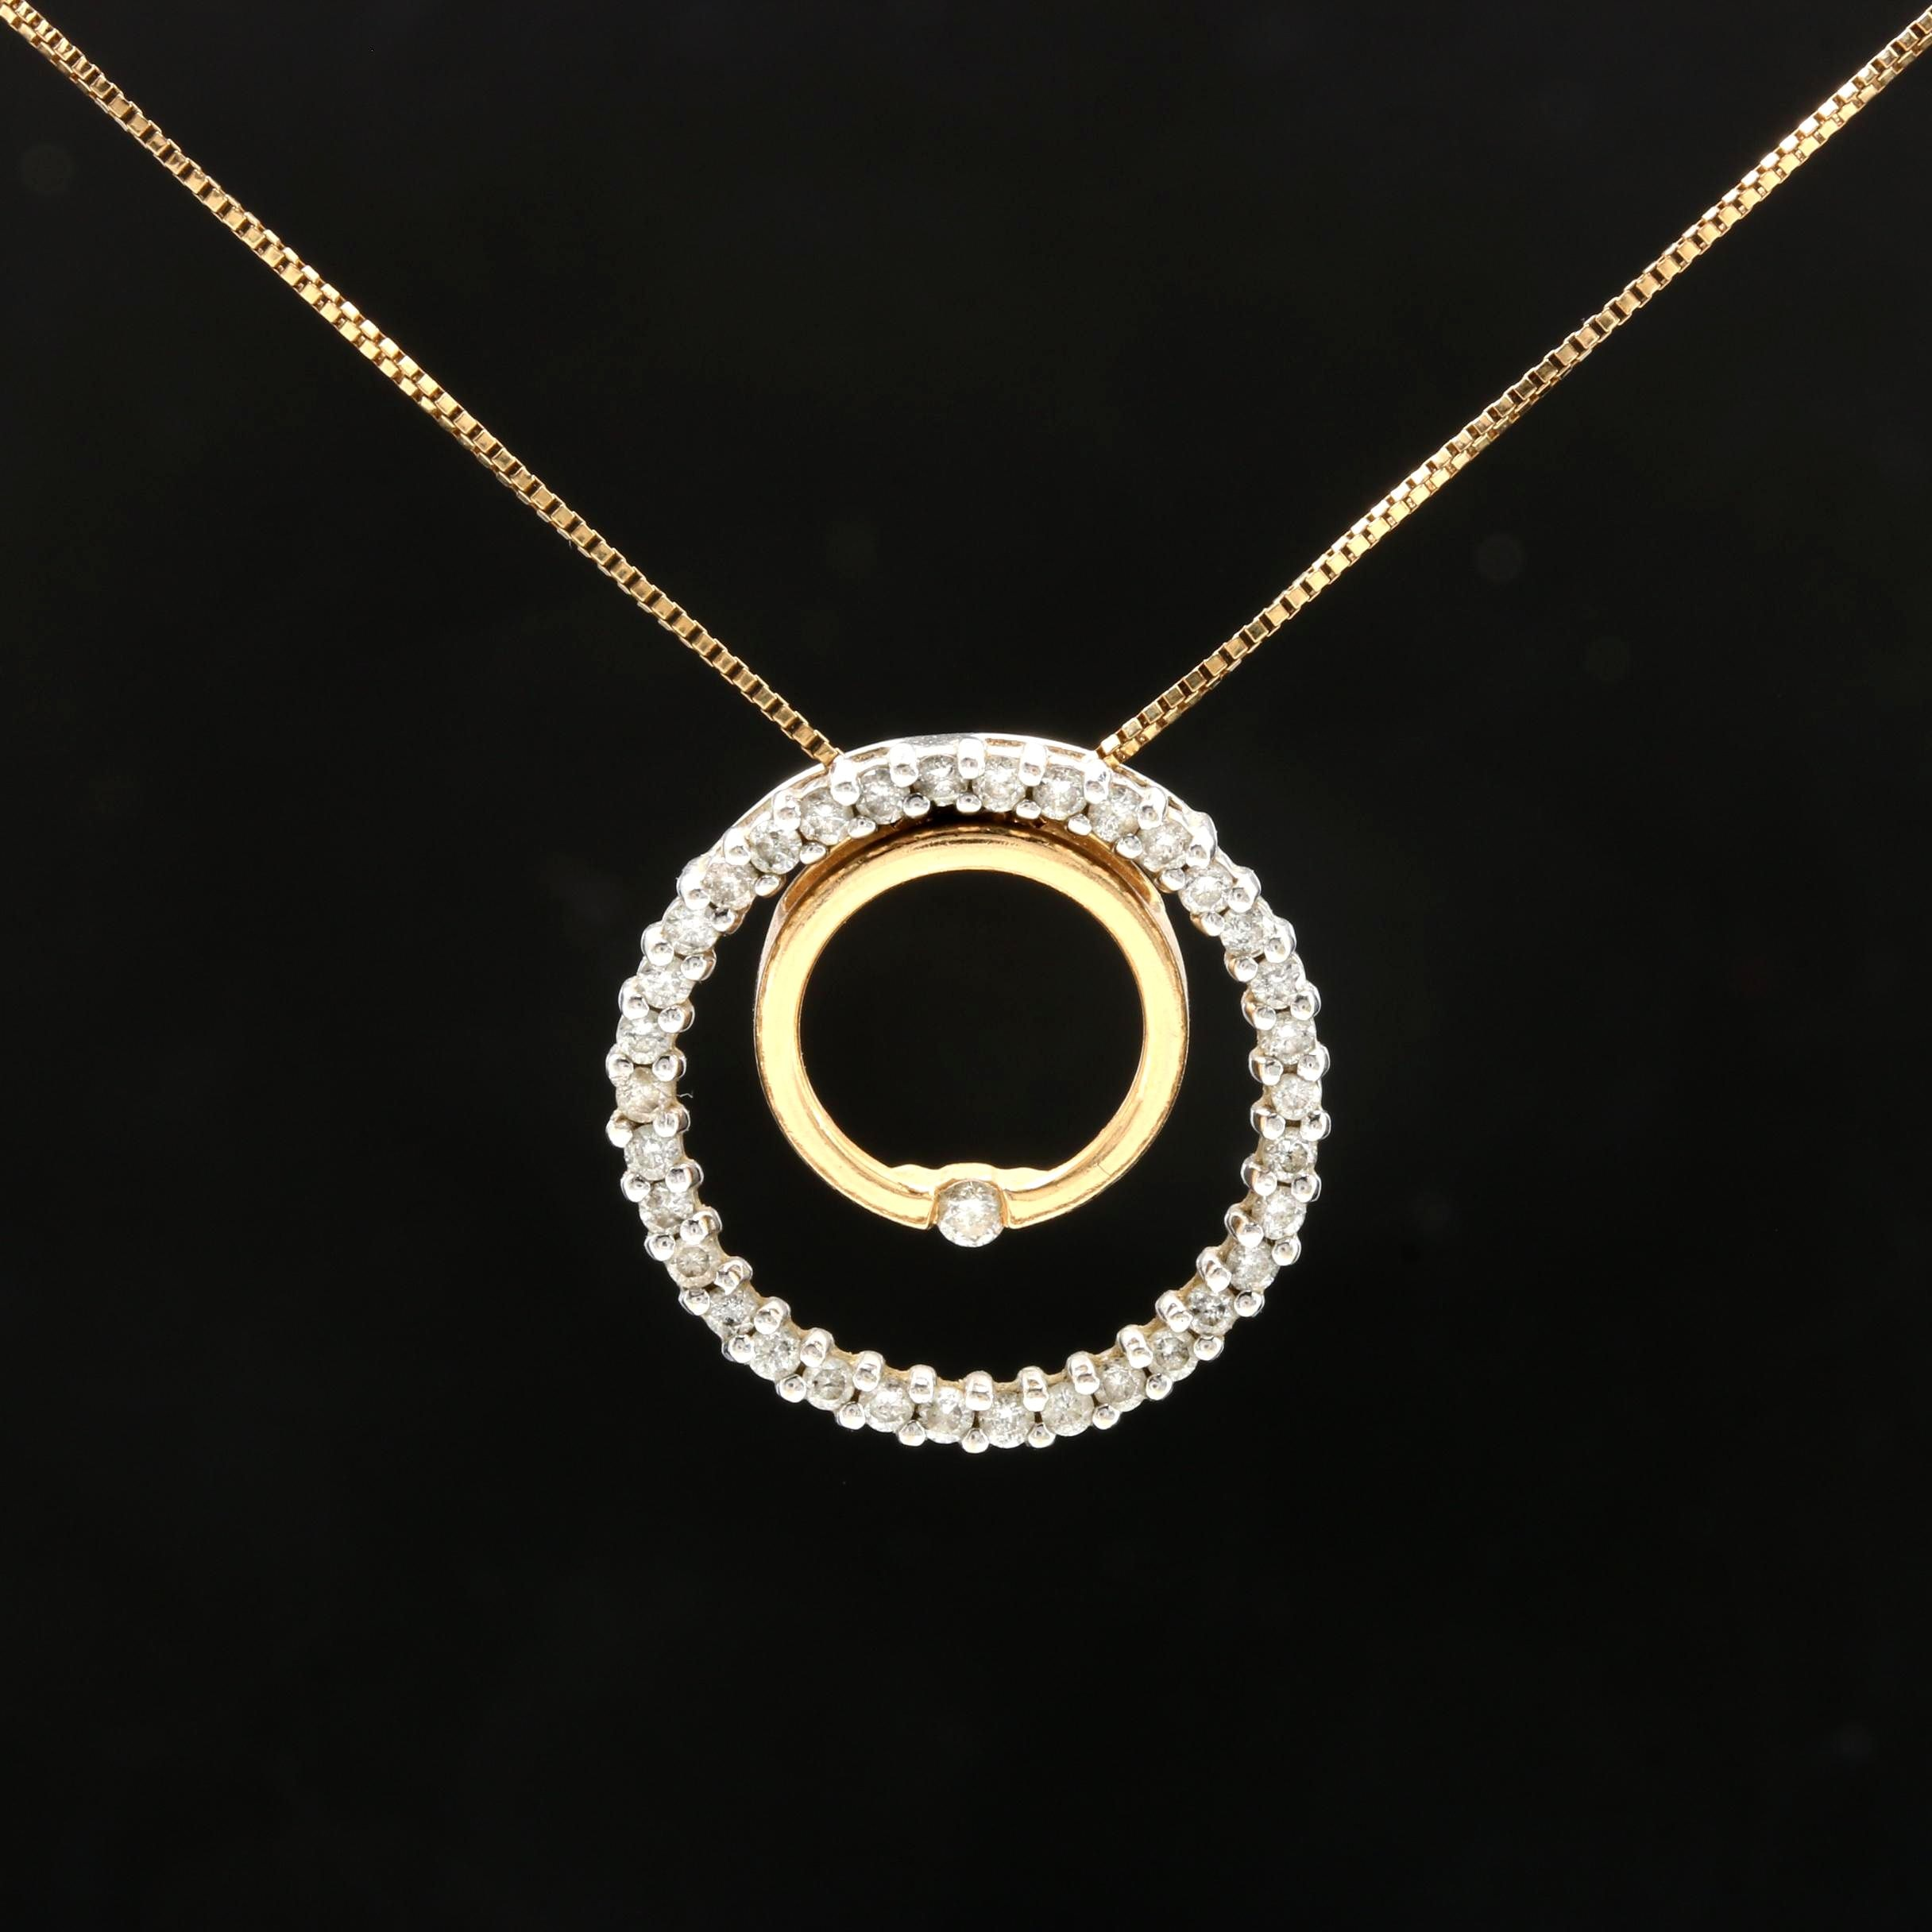 14K Yellow Gold Diamond Pendant Necklace with 14K White Gold Accent